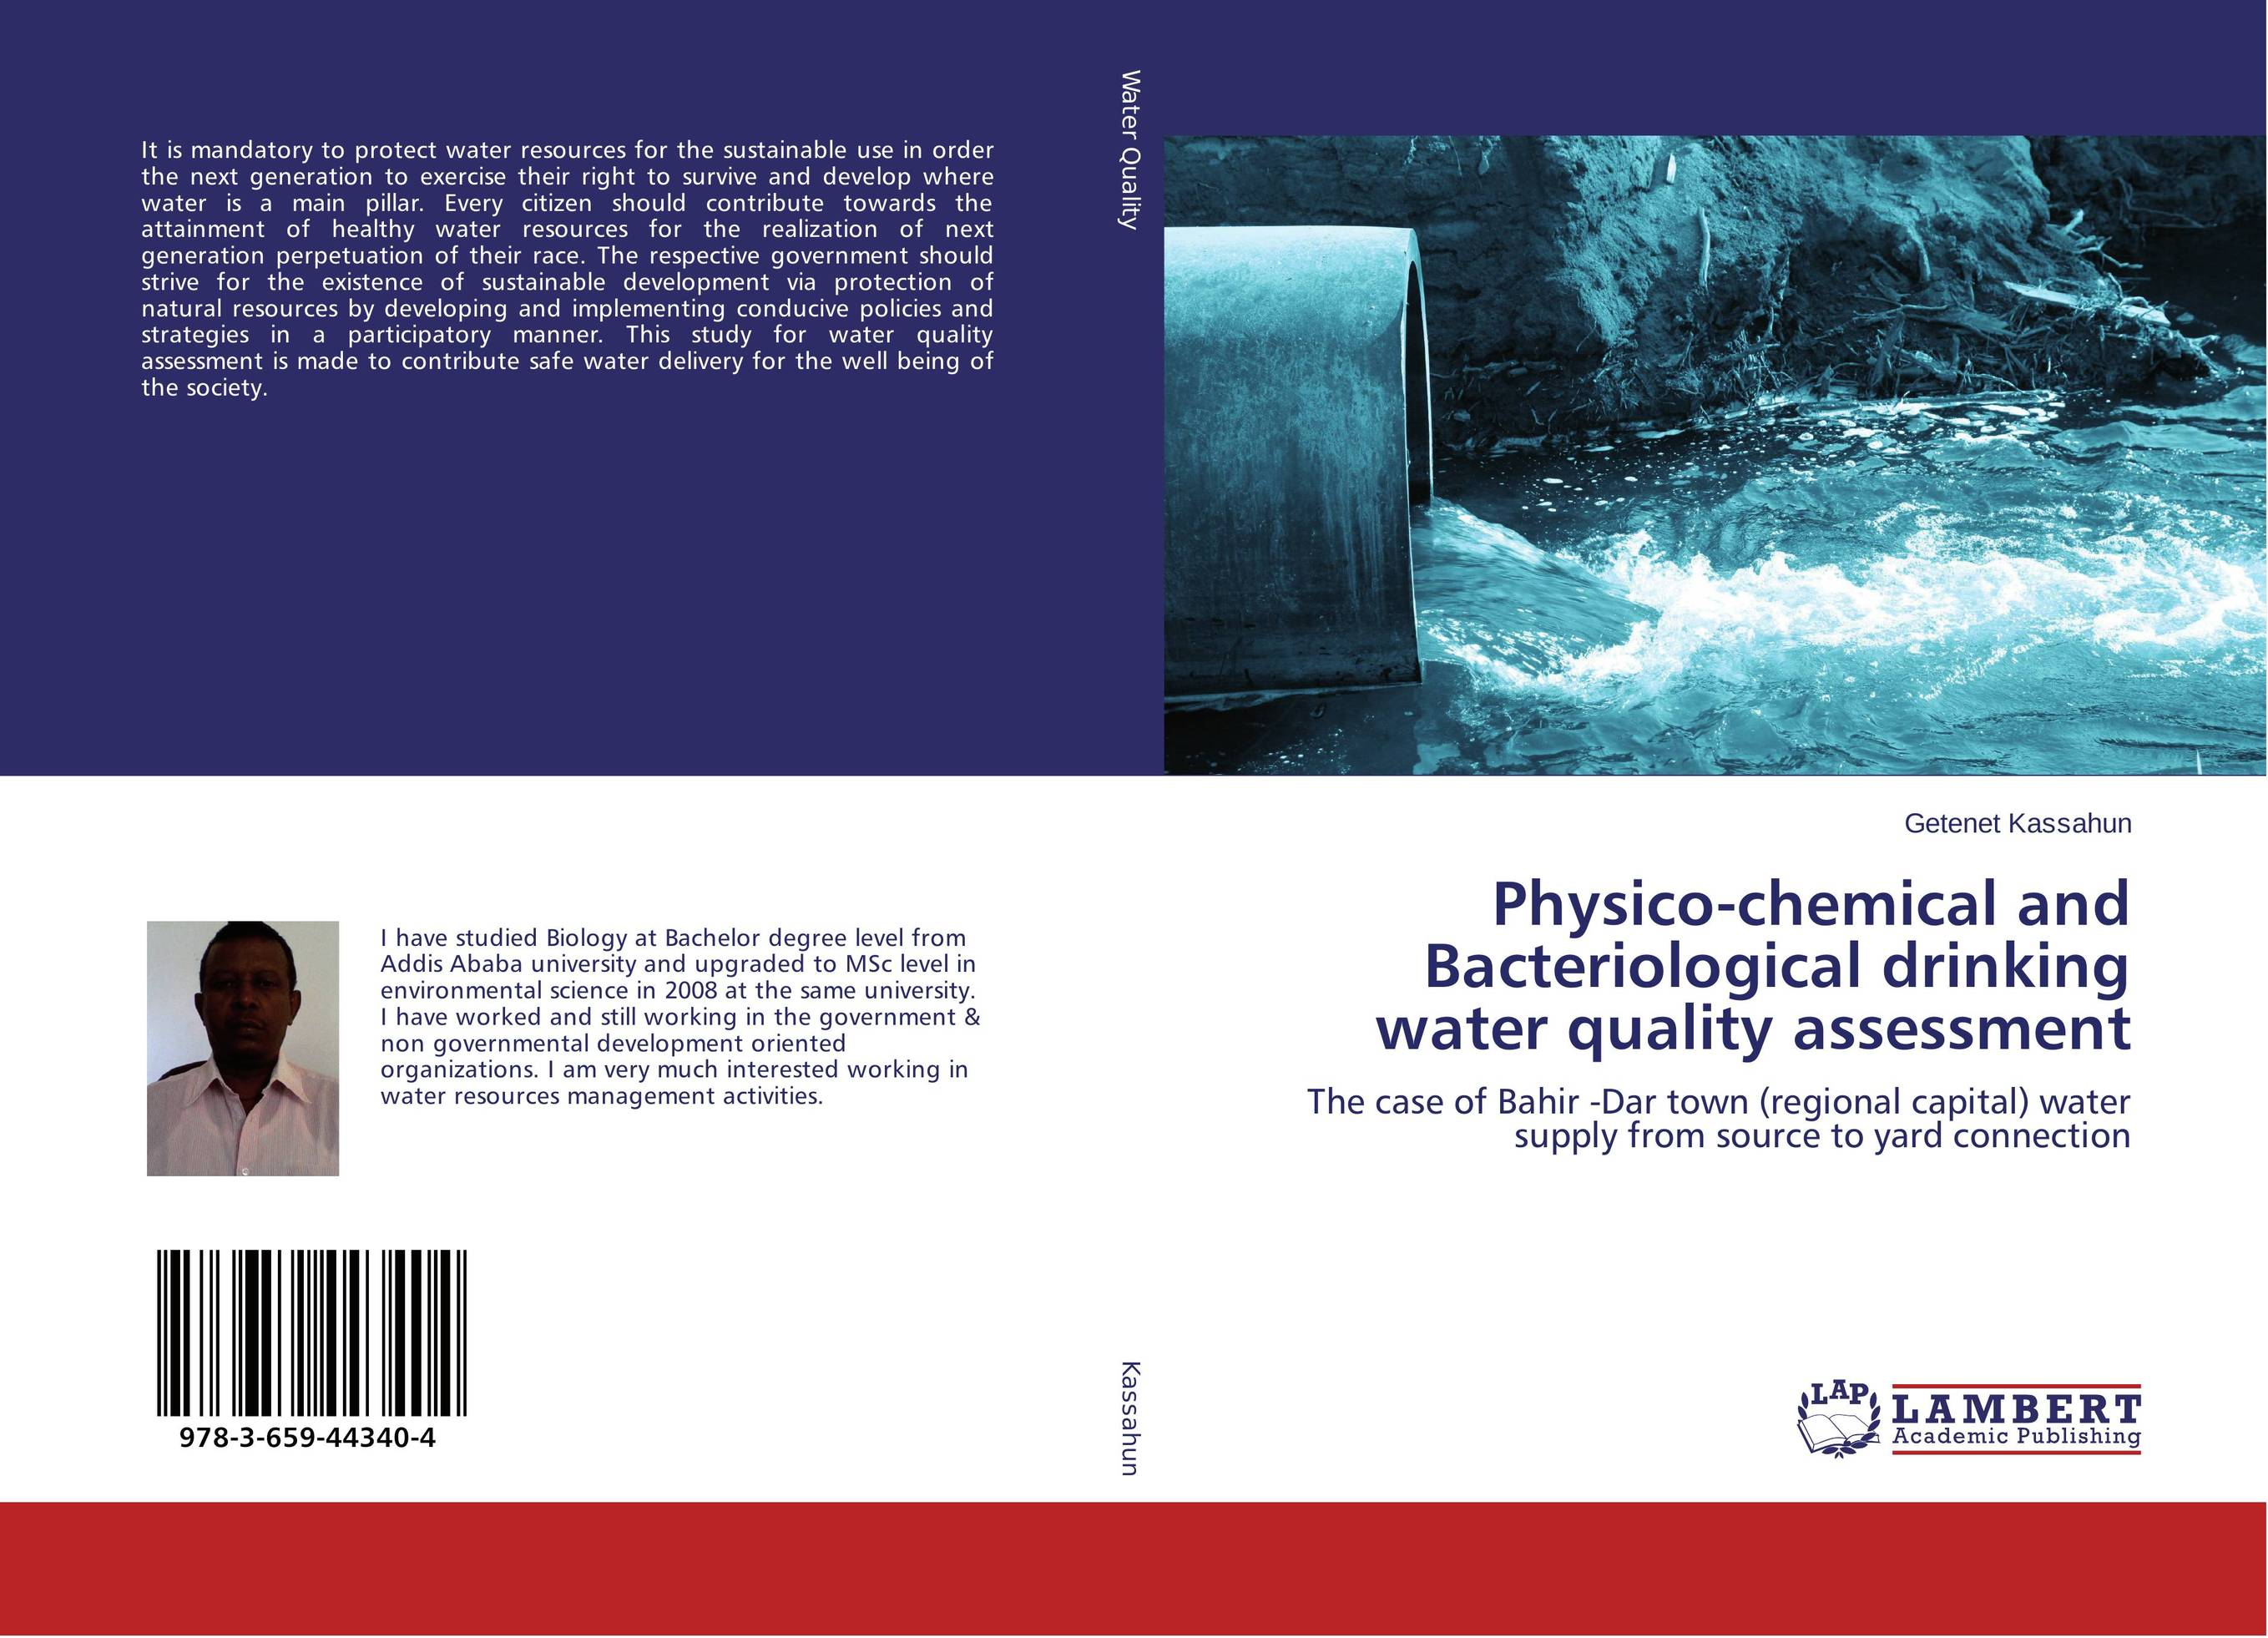 Physico-chemical and Bacteriological drinking water quality assessment physicochemical and bacteriological water quality assessment